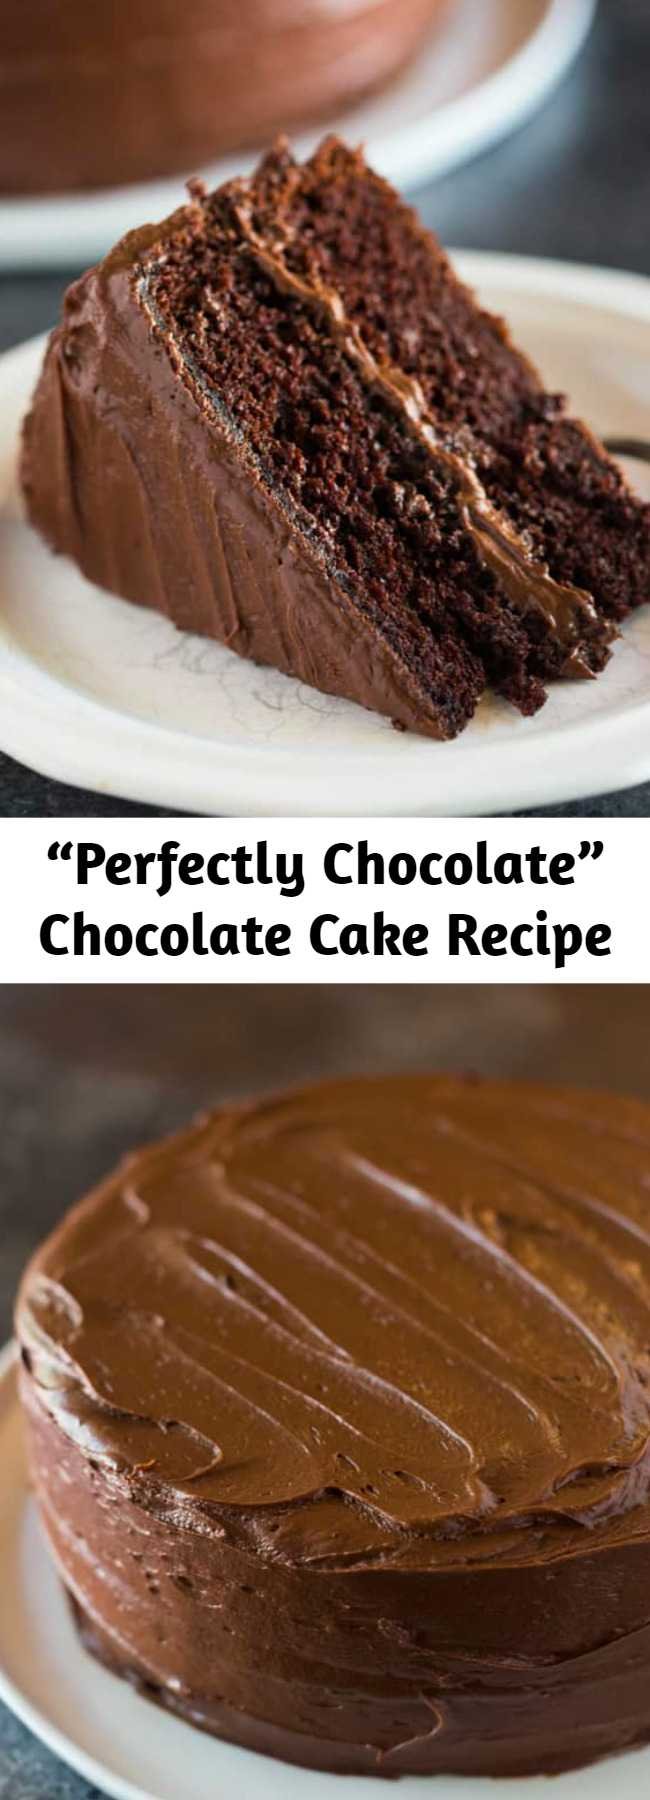 """""""Perfectly Chocolate"""" Chocolate Cake with 5 ingredient chocolate frosting is our favorite homemade chocolate cake recipe! Extra moist, with a perfect rich chocolate flavor and tender, smooth crumb."""